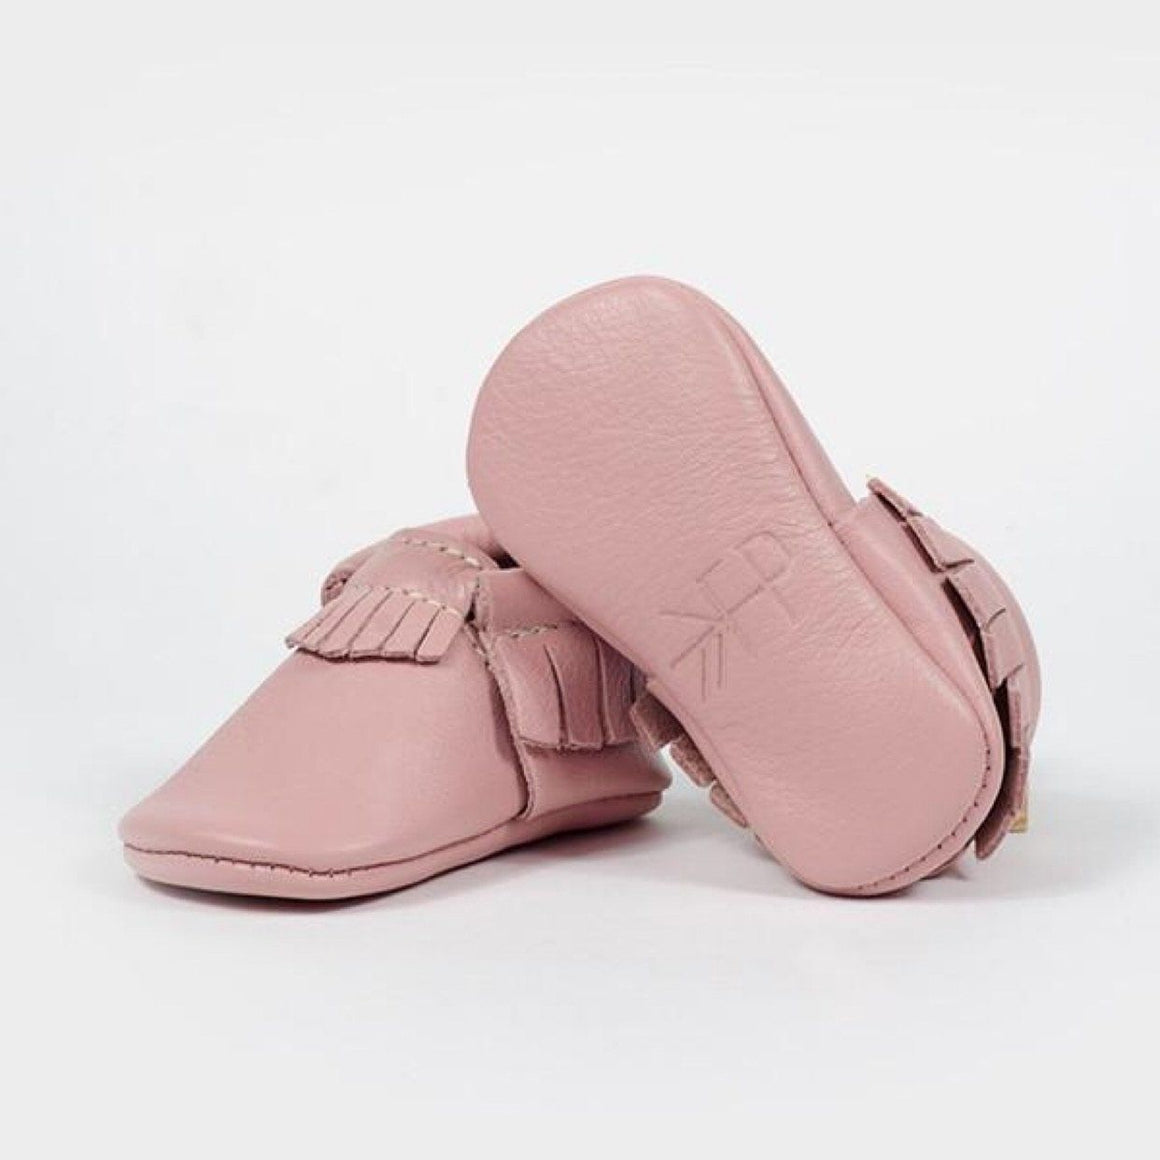 Freshly Picked - Blush Moccasins footwear Freshly Picked